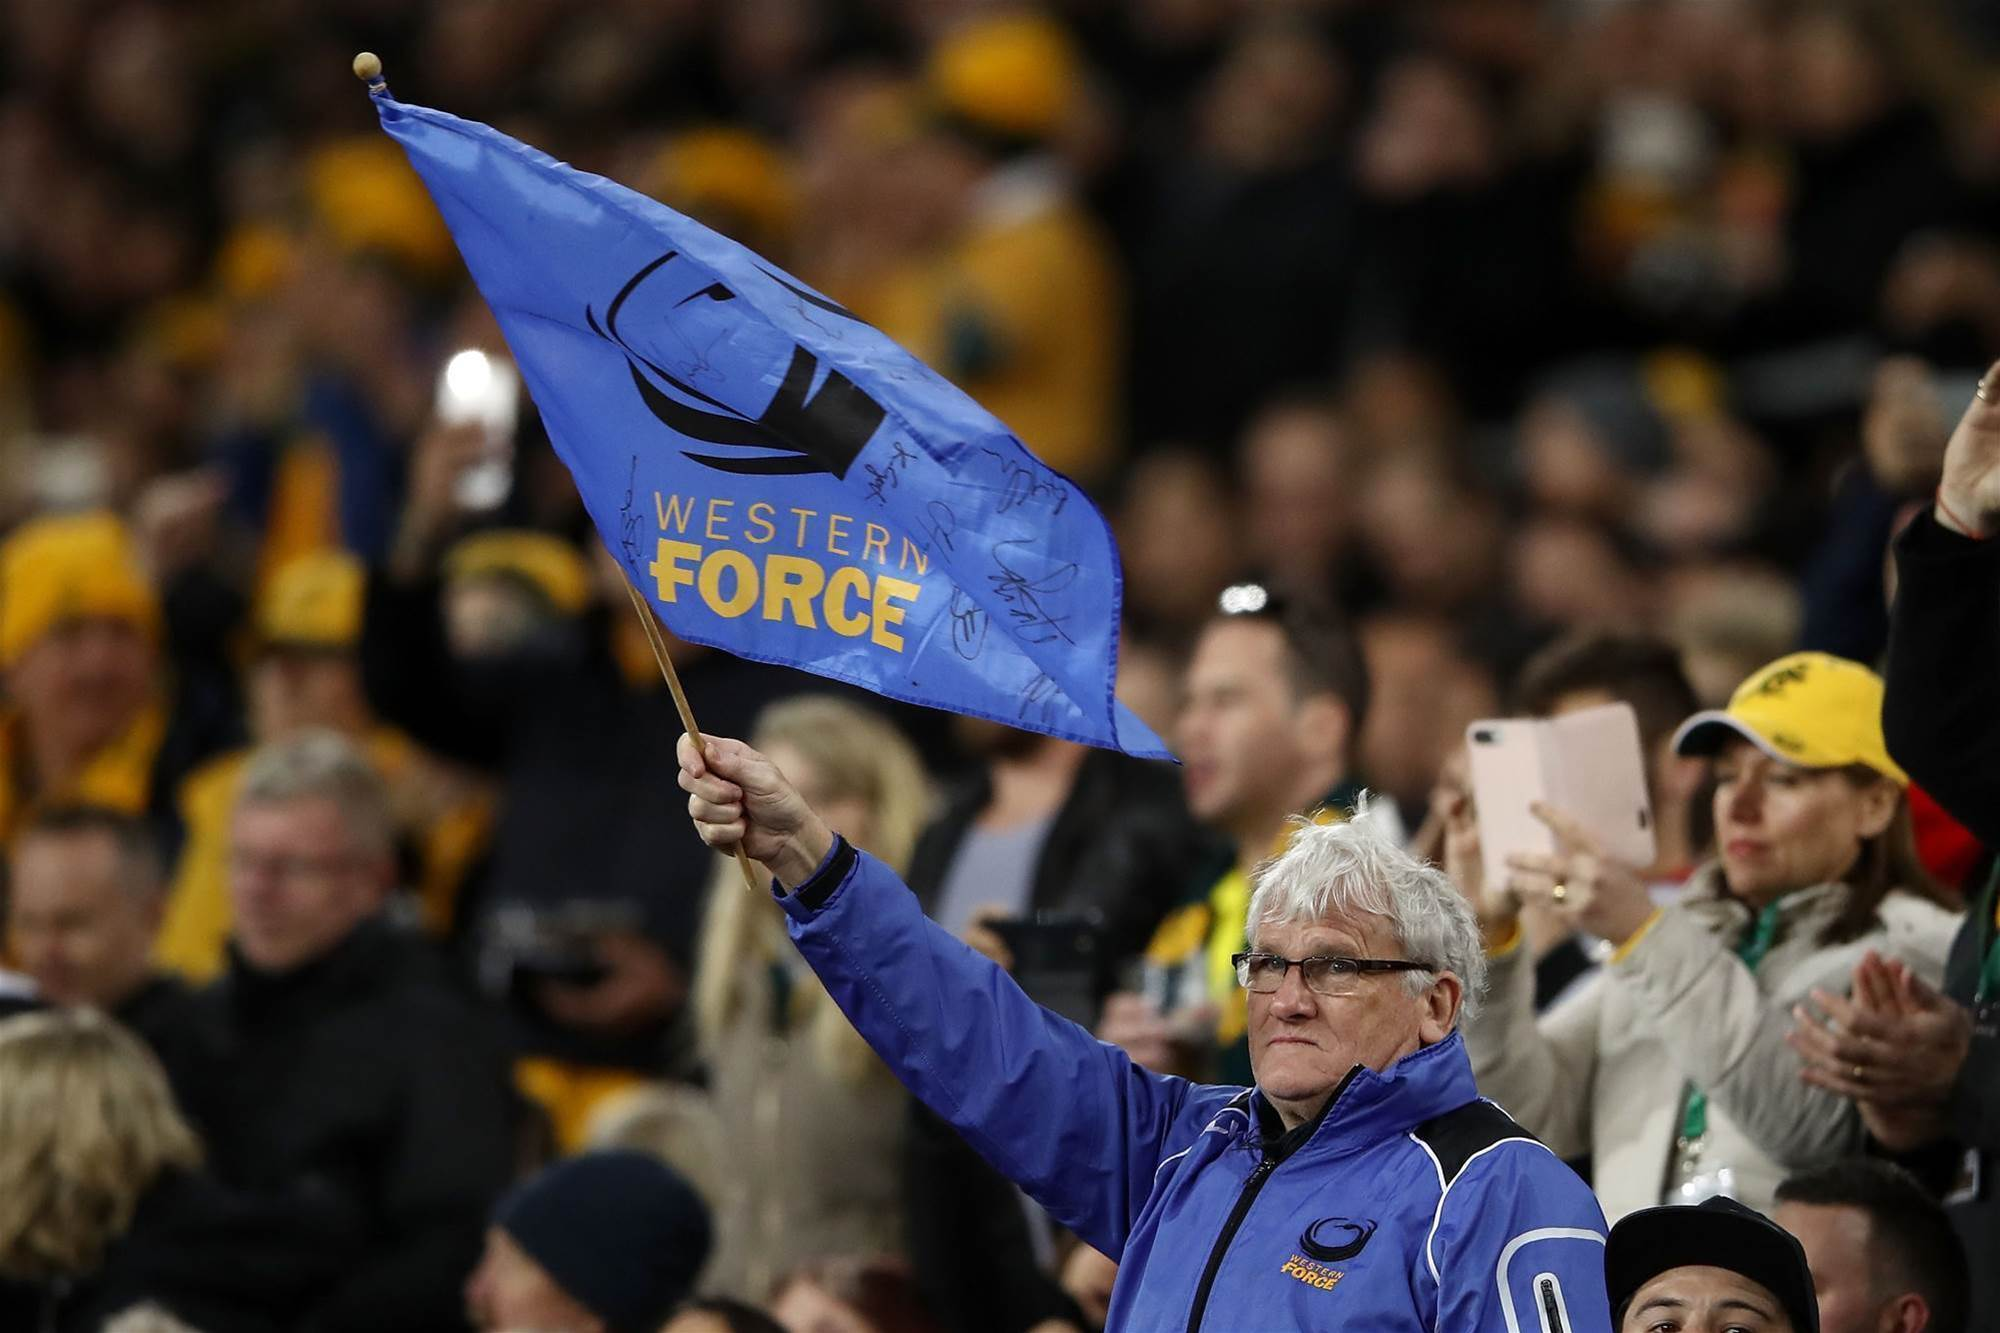 Western Force appeal quashed